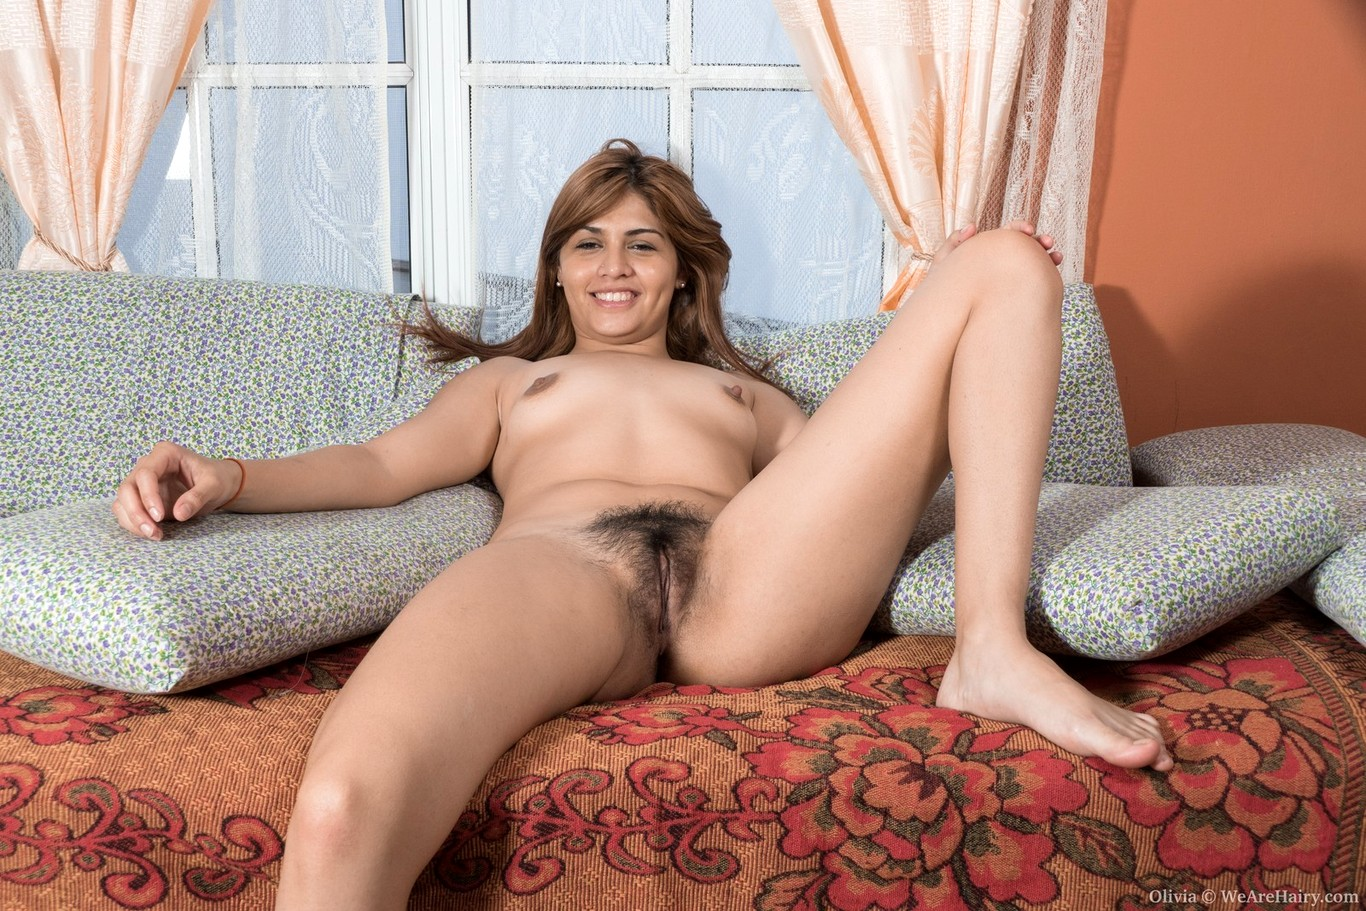 Pat nude hairy ass sitting